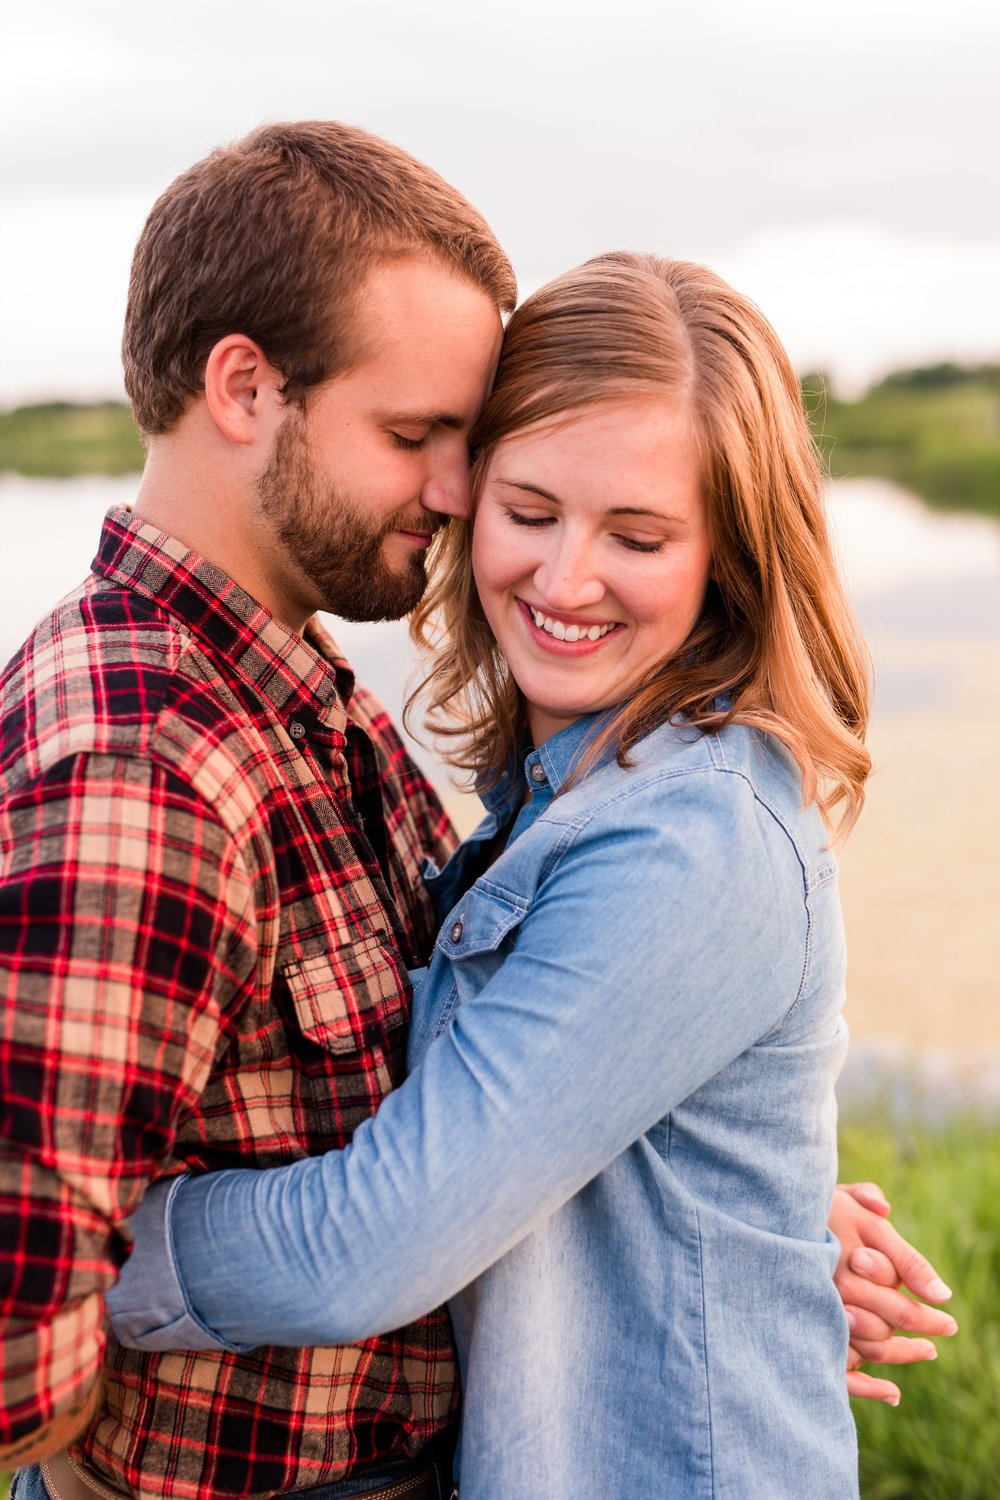 AmberLangerudPhotography_Countryside Engagement Session in Minnesota_3137.jpg